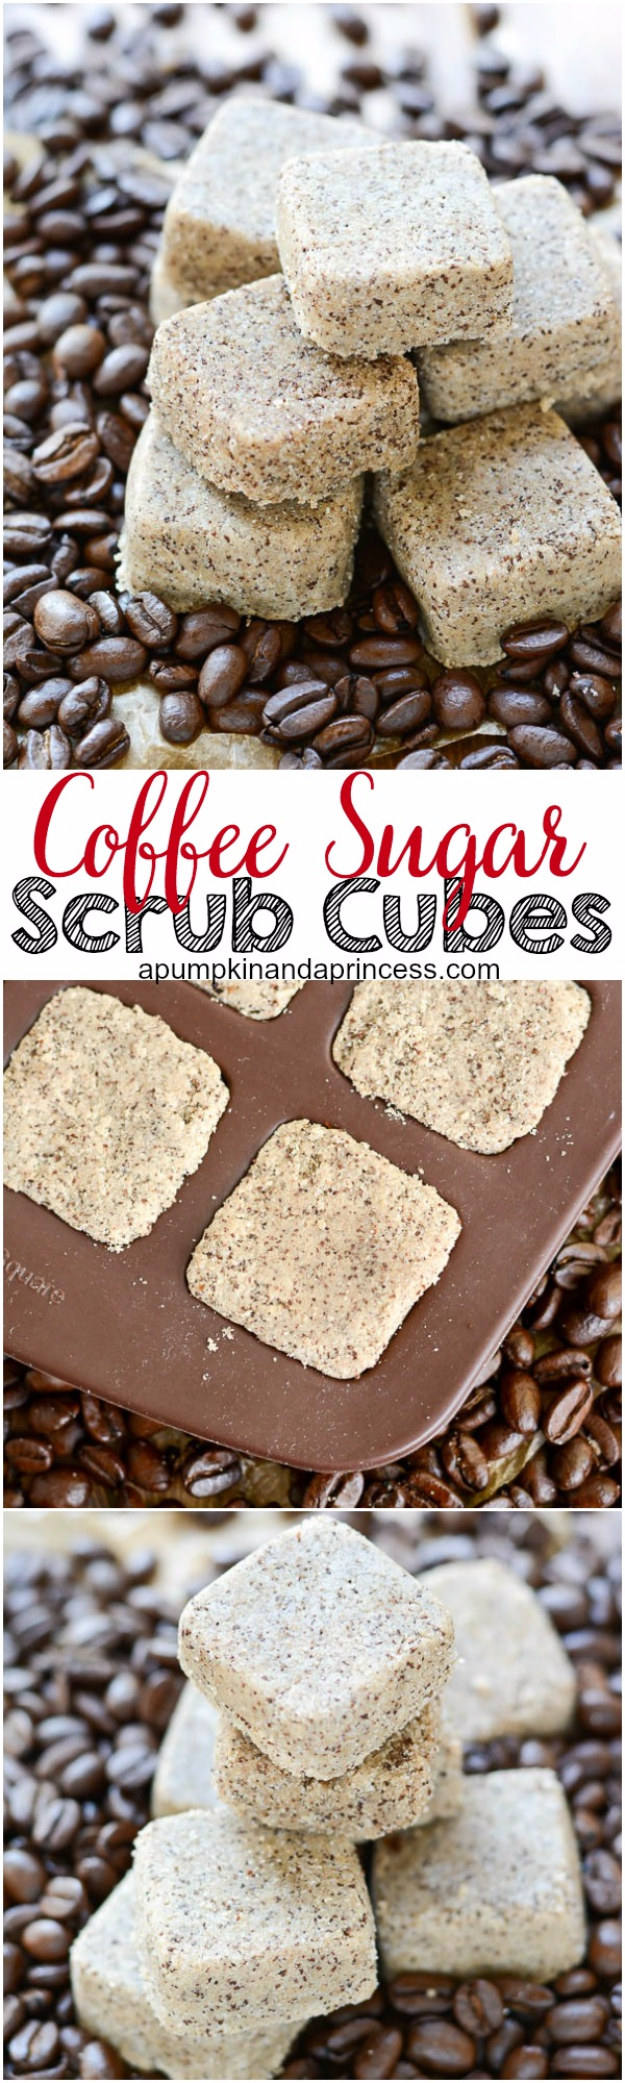 DIY Sugar Scrub Recipes - Coffee Sugar Scrub Cubes - Easy and Quick Beauty Products You Can Make at Home - Cool and Cheap DIY Gift Ideas for Homemade Presents Women, Girls and Teens Love - Natural Recipe Ideas for Making Sugar Scrub With Step by Step Tutorials